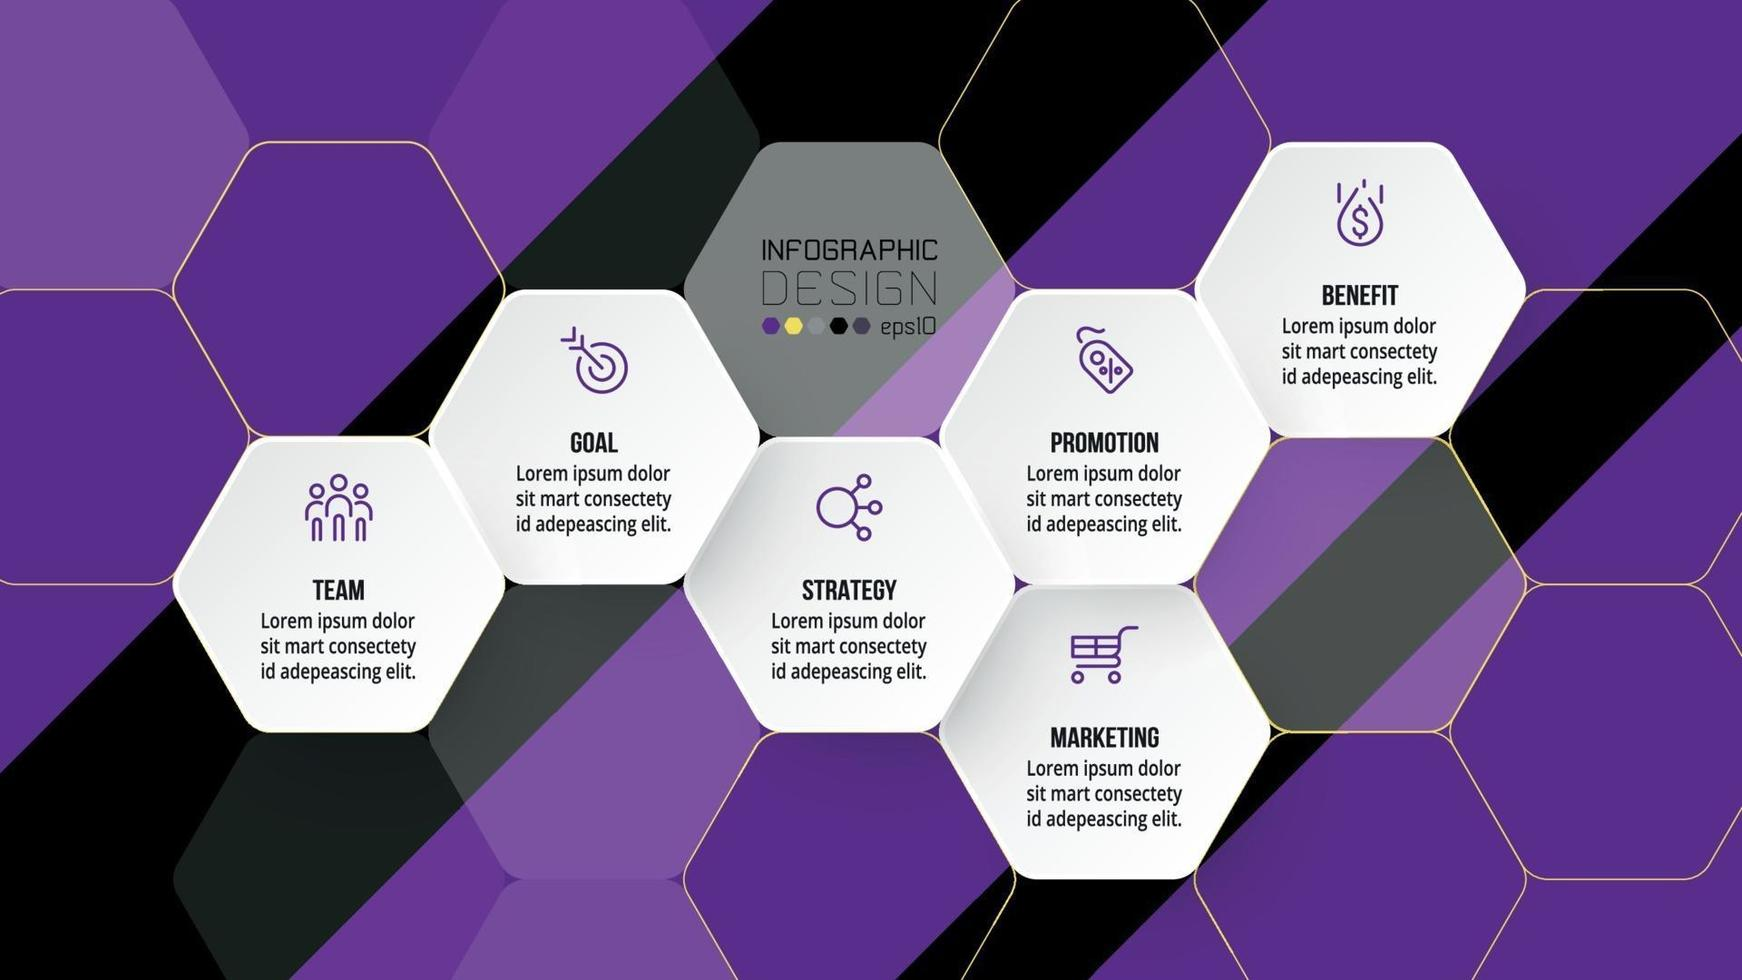 Timeline business infographic template design. vector